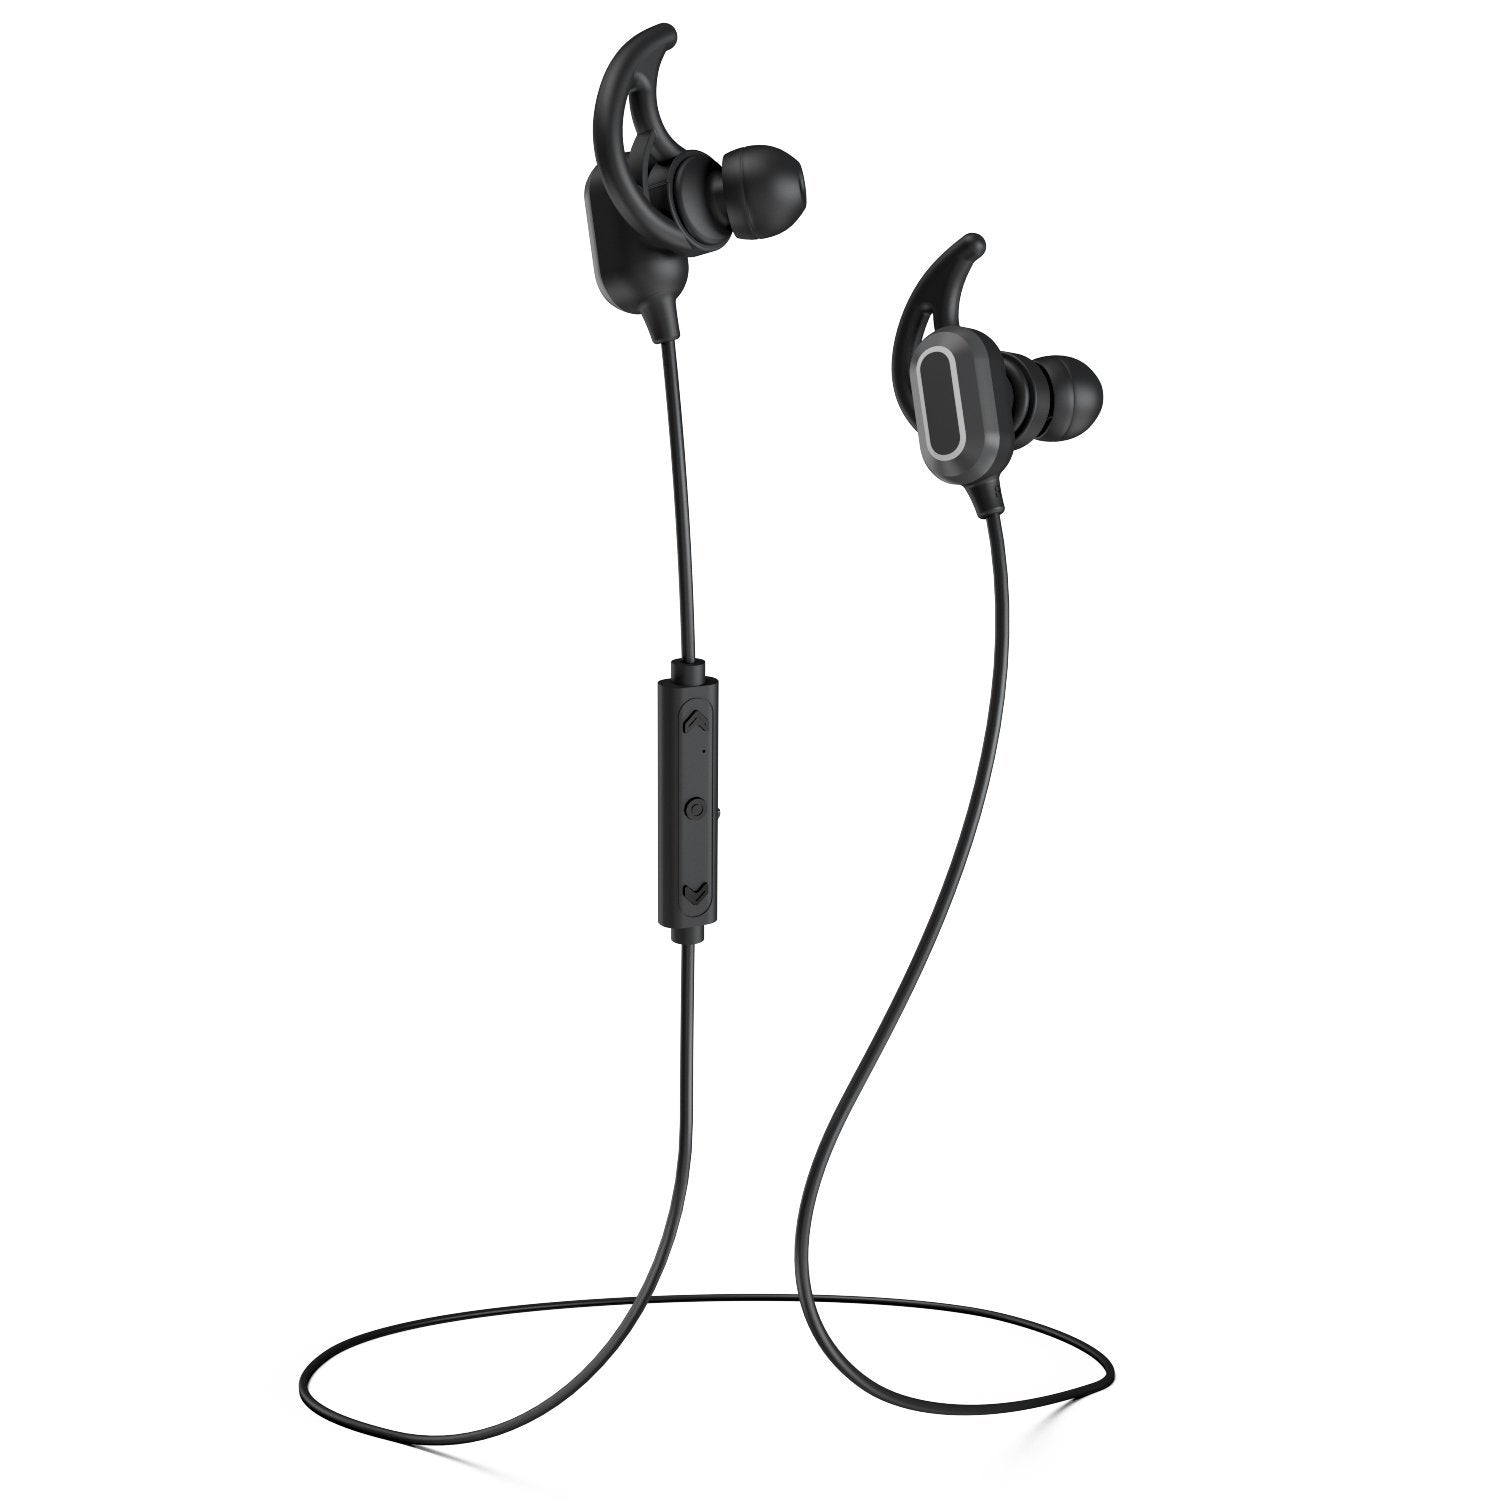 Phaiser BHS-760 Bluetooth Headphones